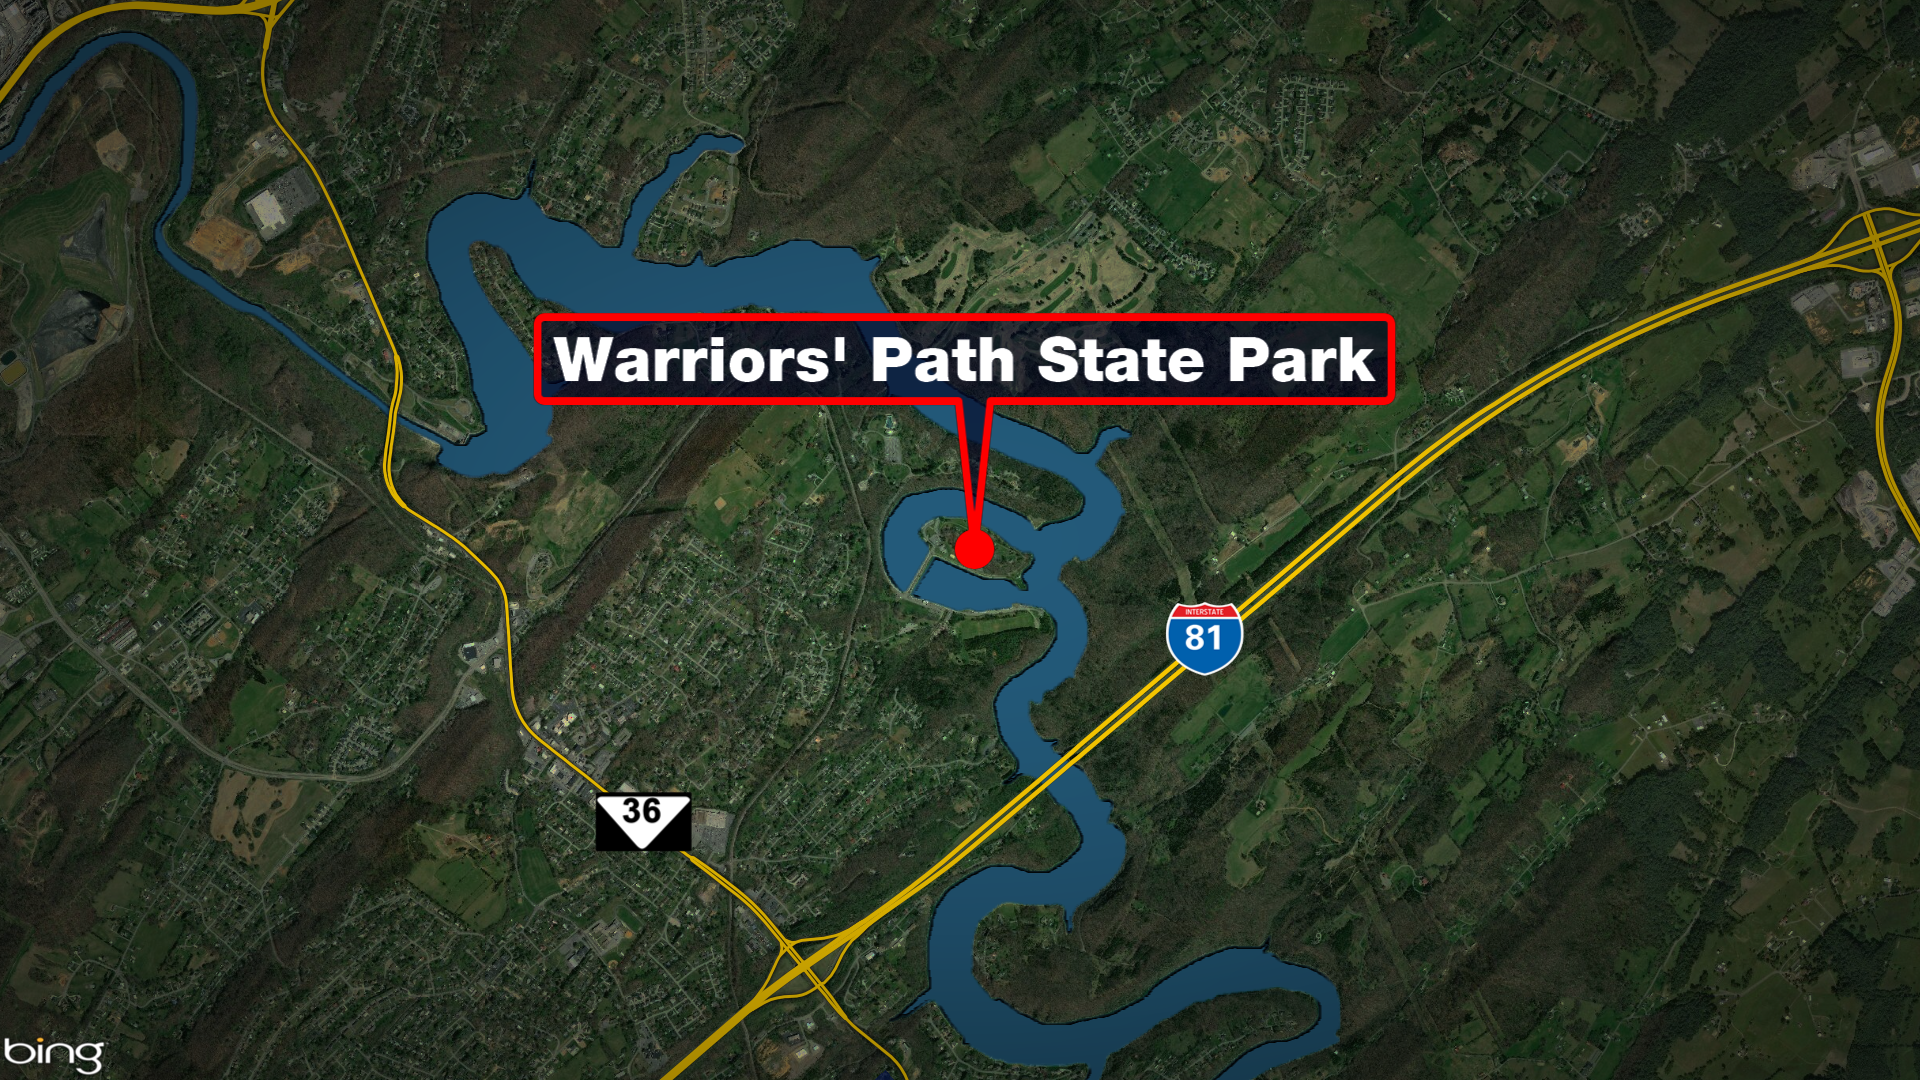 WARRIORS PATH STATE PARK_1532786415486.png.jpg